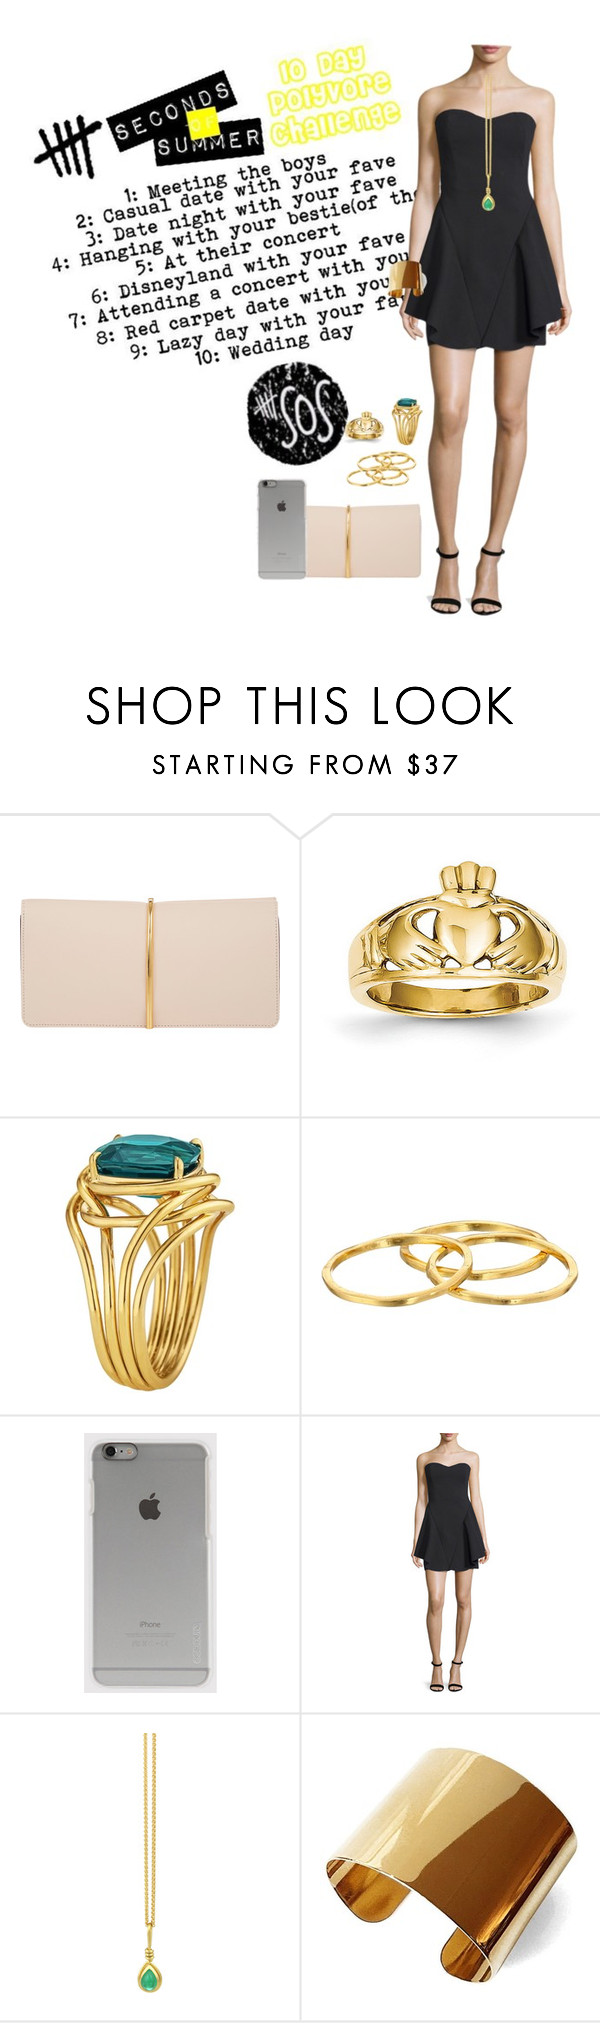 """Day 8: red carpet date with Luke (my fave)"" by sarah-horan-96 ❤ liked on Polyvore featuring Nina Ricci, Kevin Jewelers, Tiffany & Co., Gorjana, Incase, Halston Heritage, Prism Design and Tuleste"